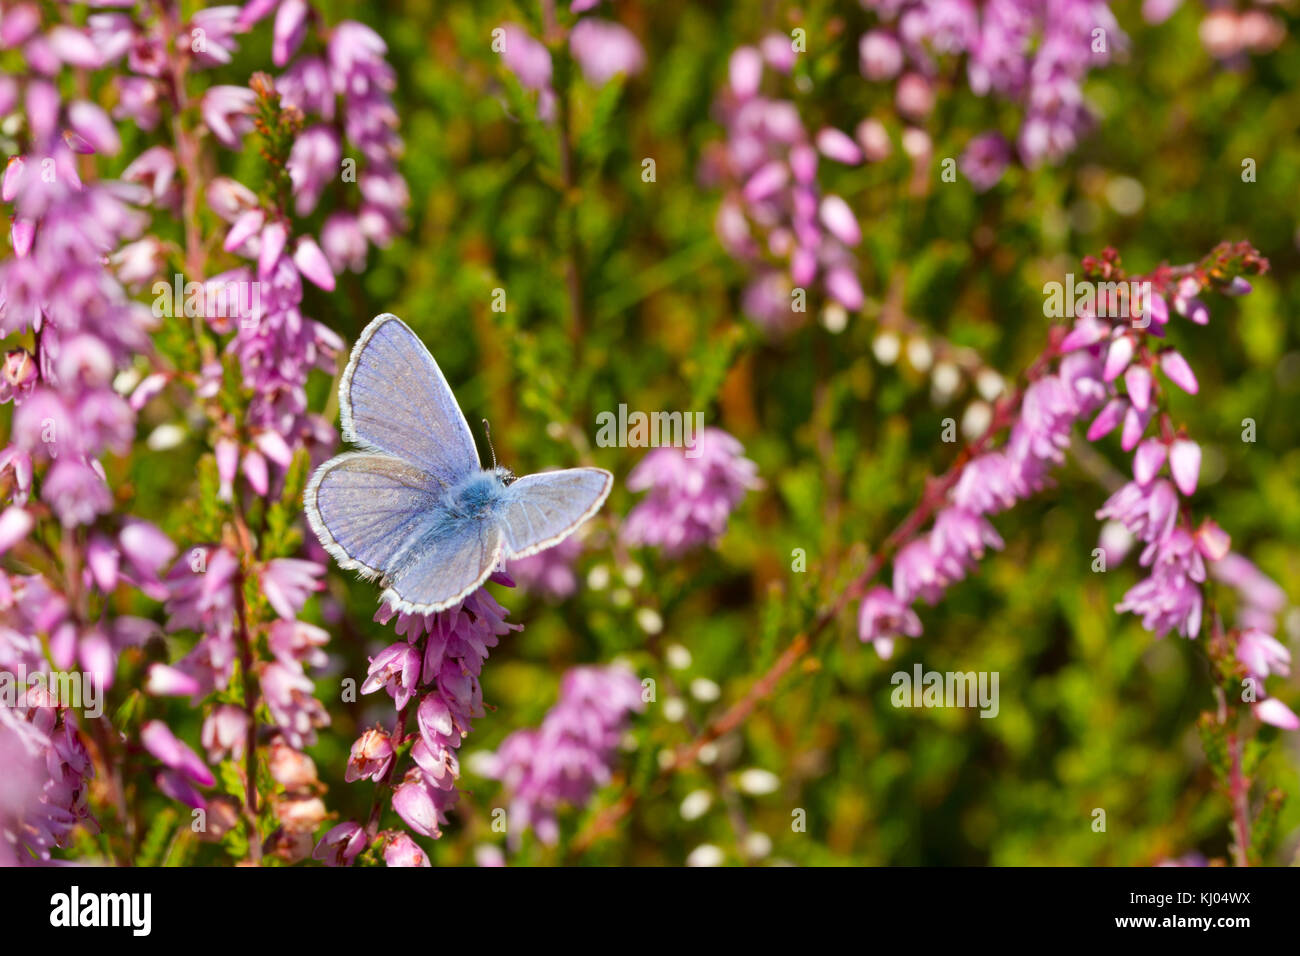 Common Blue butterfly (Polyommatus icarus) adult male feeding on Heather (Calluna vulgaris) flowers. Powys, Wales. - Stock Image